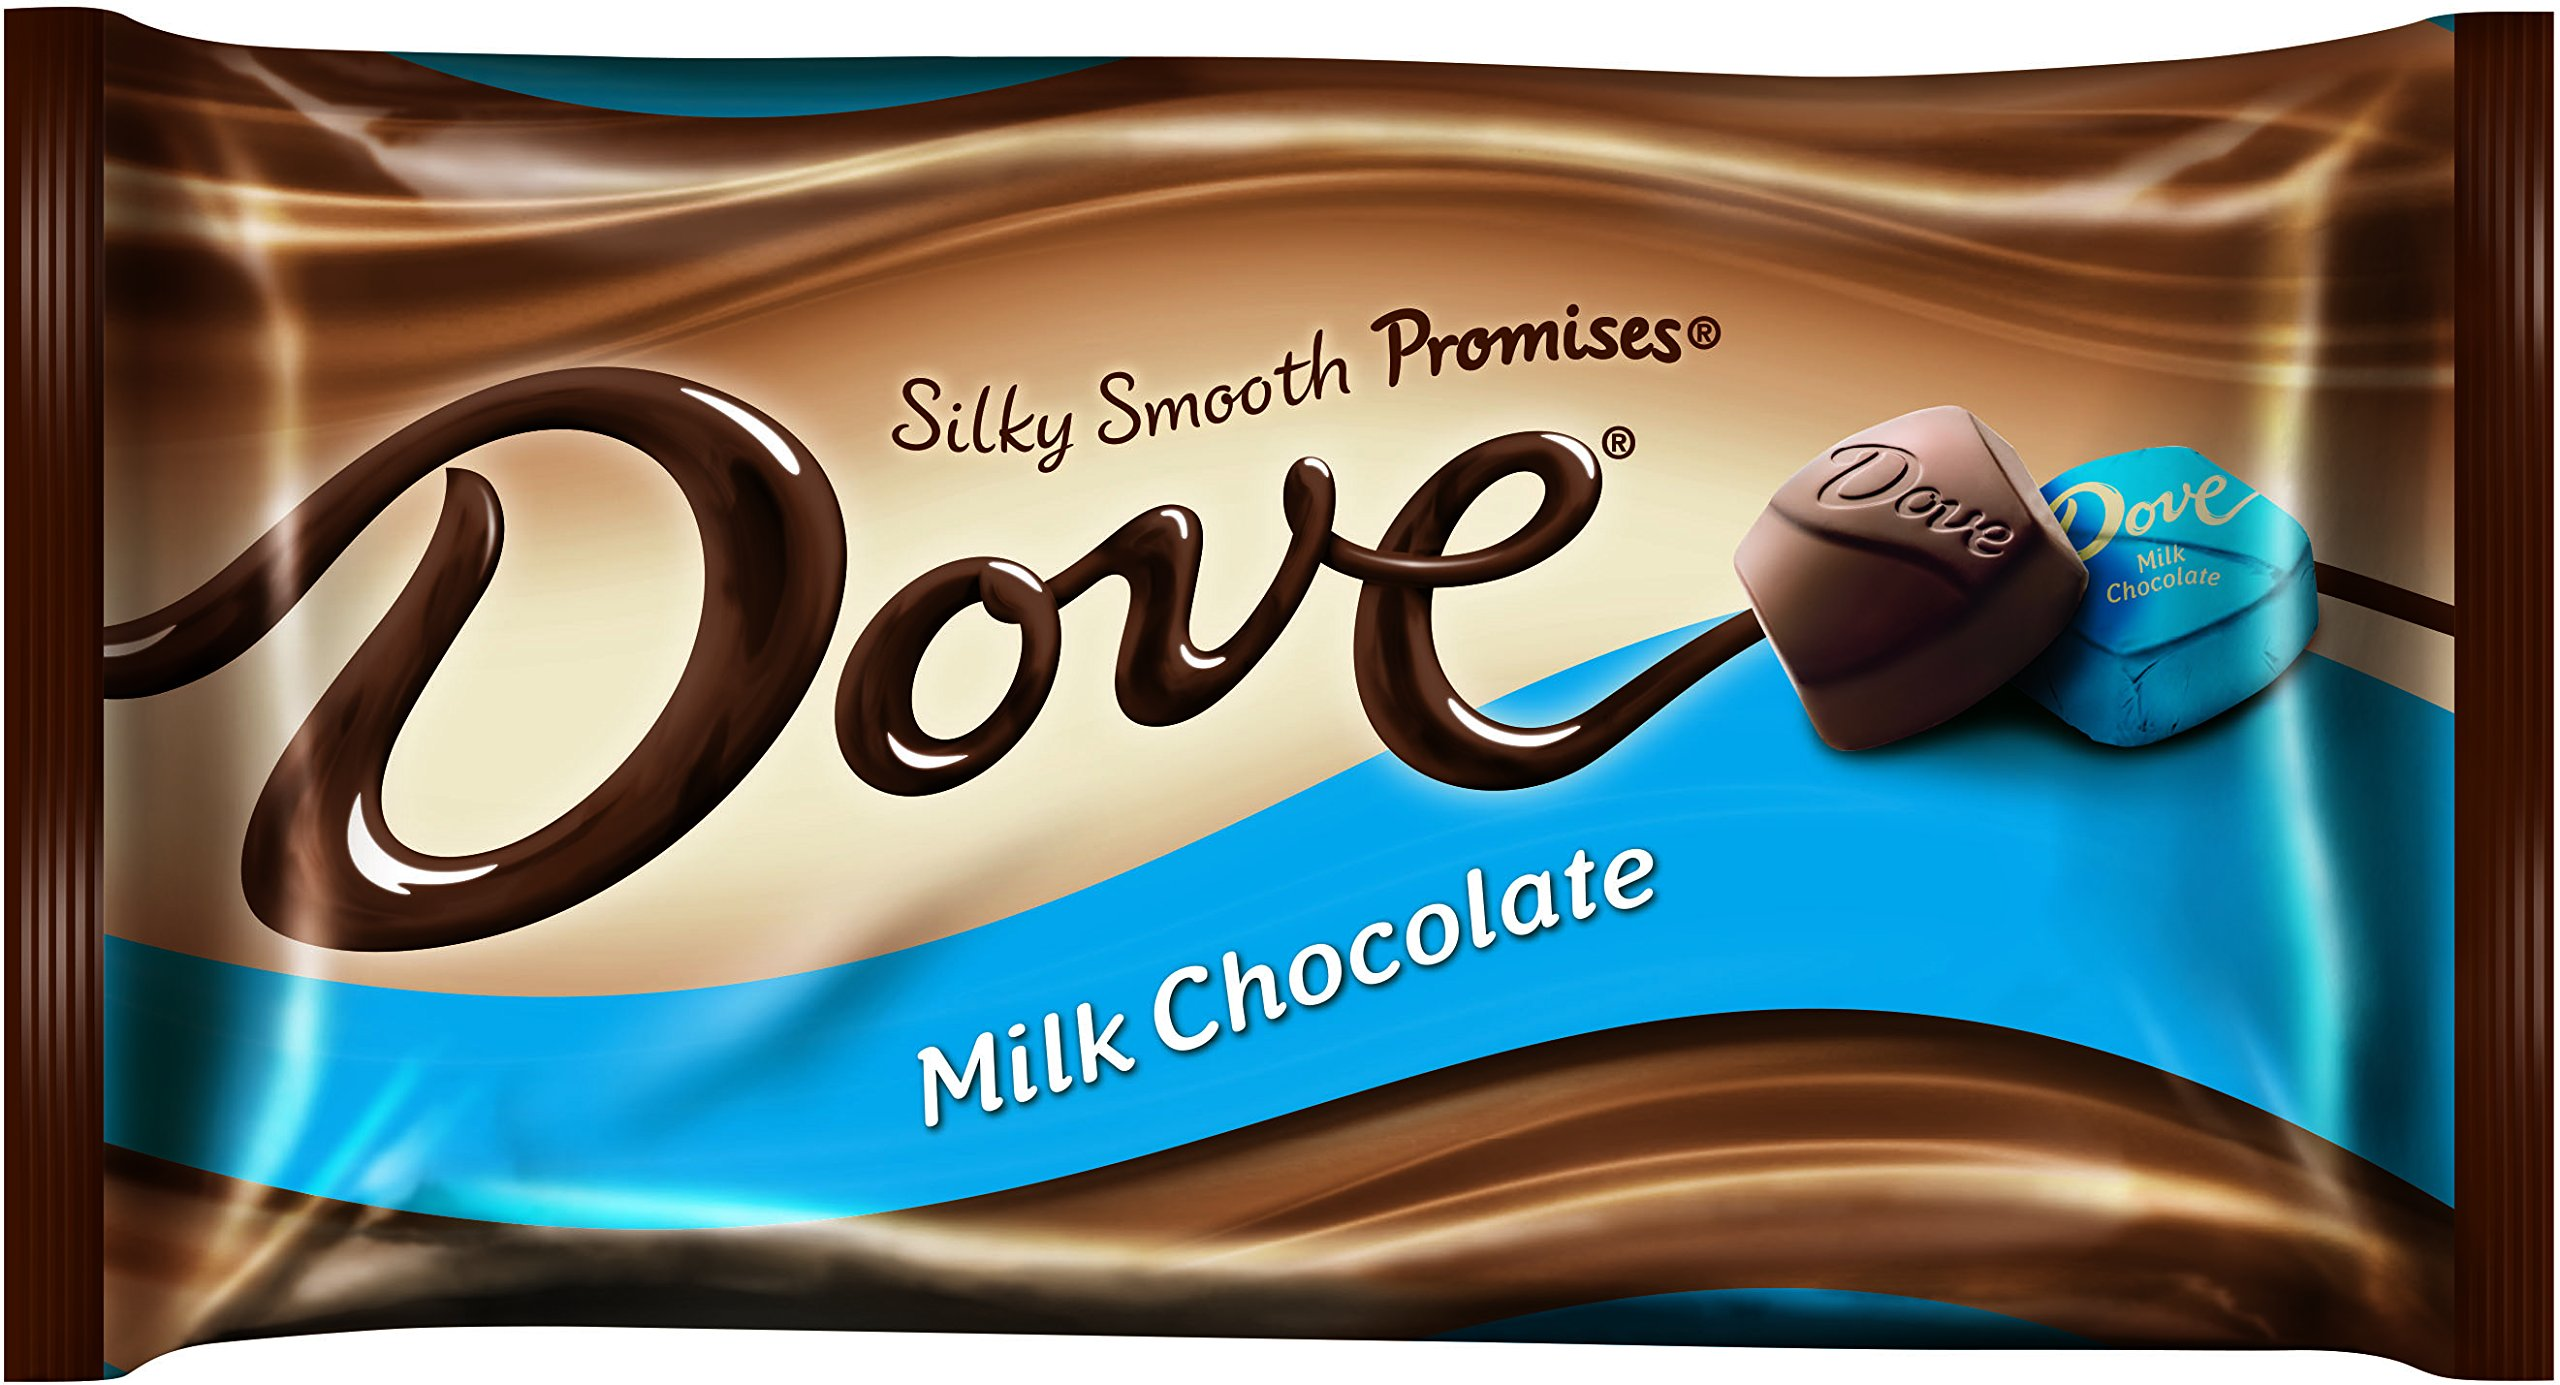 Dove Milk Chocolate, Silky Smooth Promises, 9.5-Ounce Packages (Pack of 4) by Dove